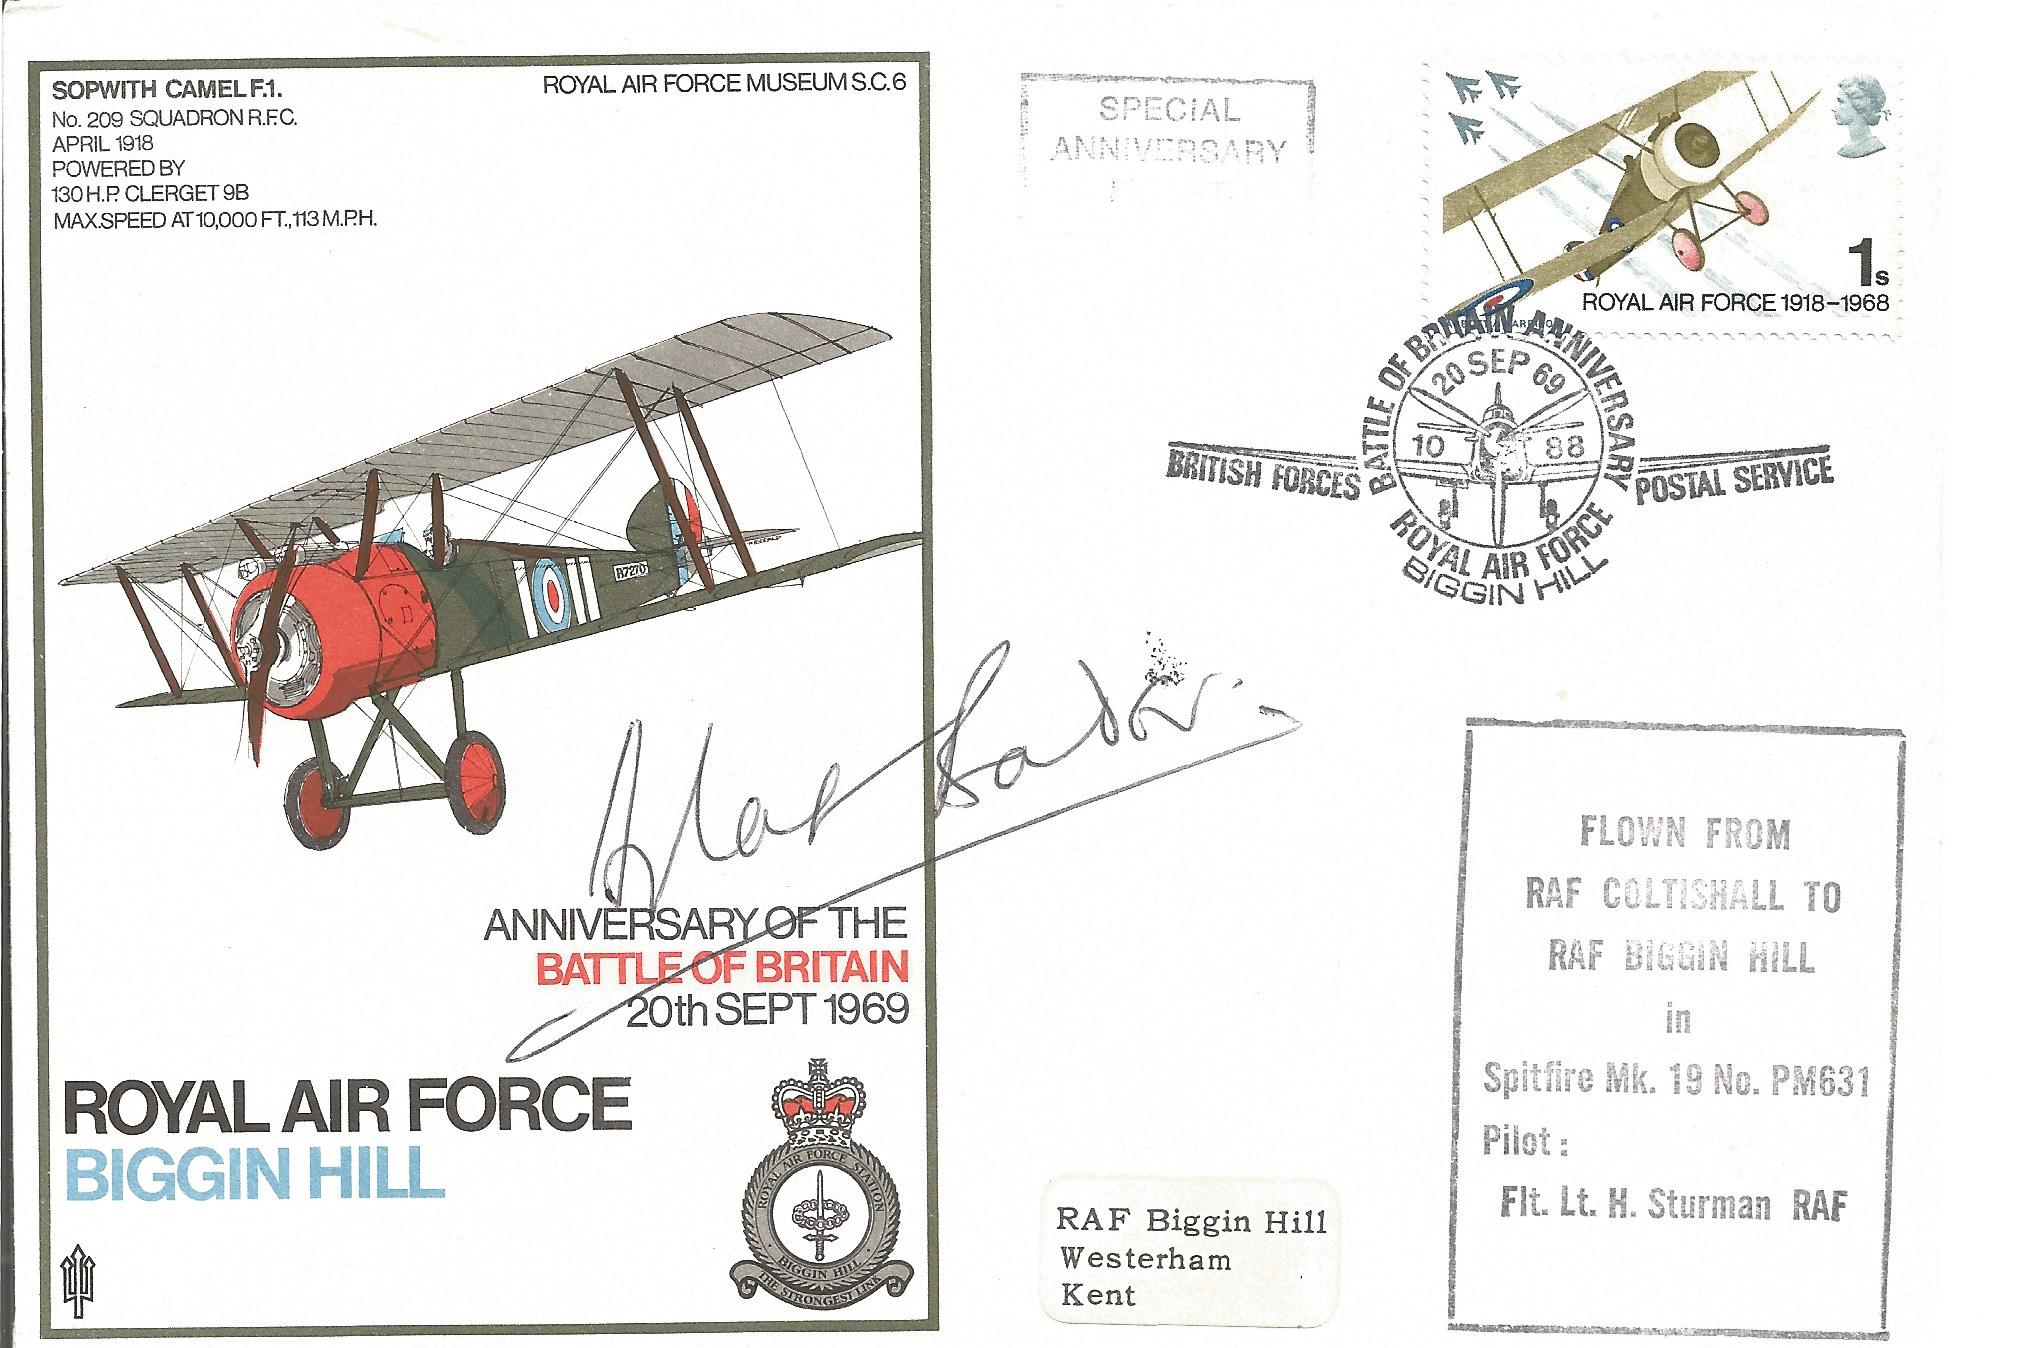 Group Captain Sir Douglas Robert Bader signed FDC. Bader was a Royal Air Force flying ace during the